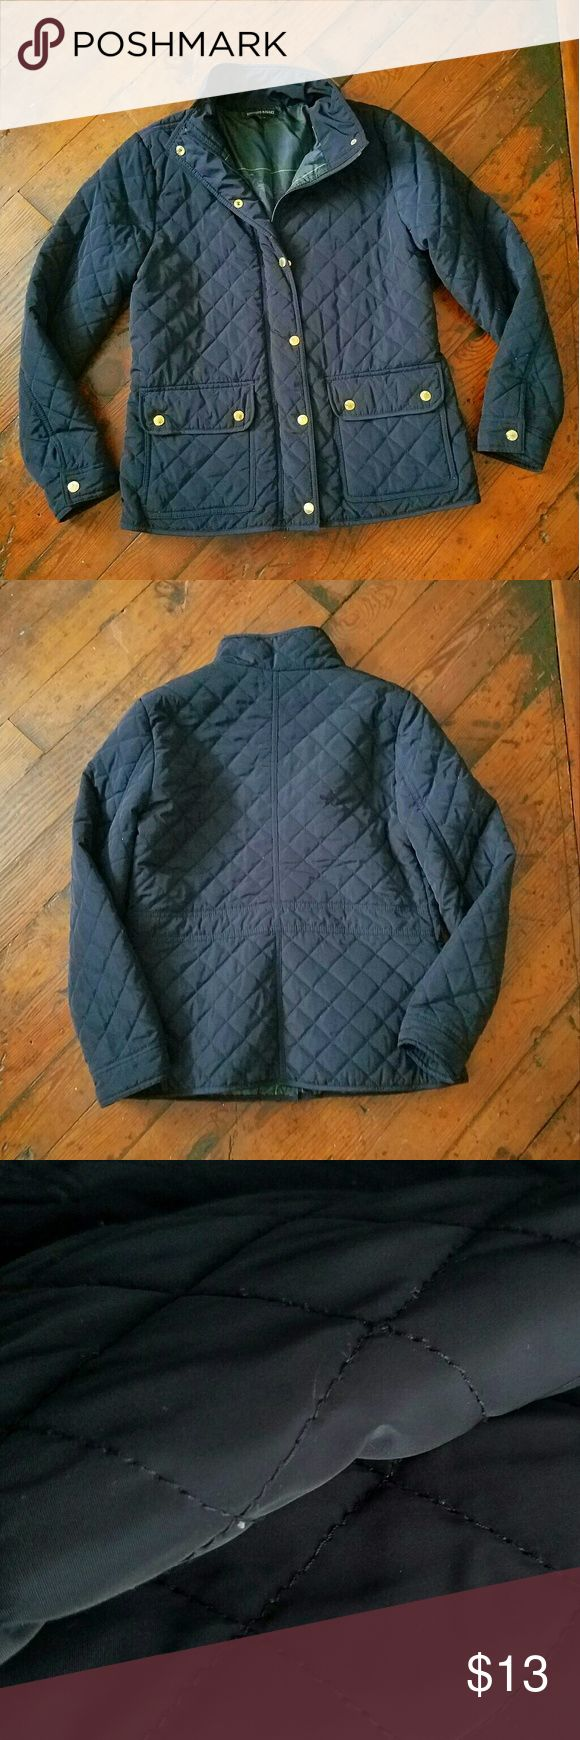 British Khaki Jacket Quilted pattern navy jacket. Worn only a few times and in good condition with minor pilling. Cozy and warm. Zips and buttons with 2 pockets. Measurements: Bust 48 in Waist 42 in Length 26 in British Khaki Jackets & Coats